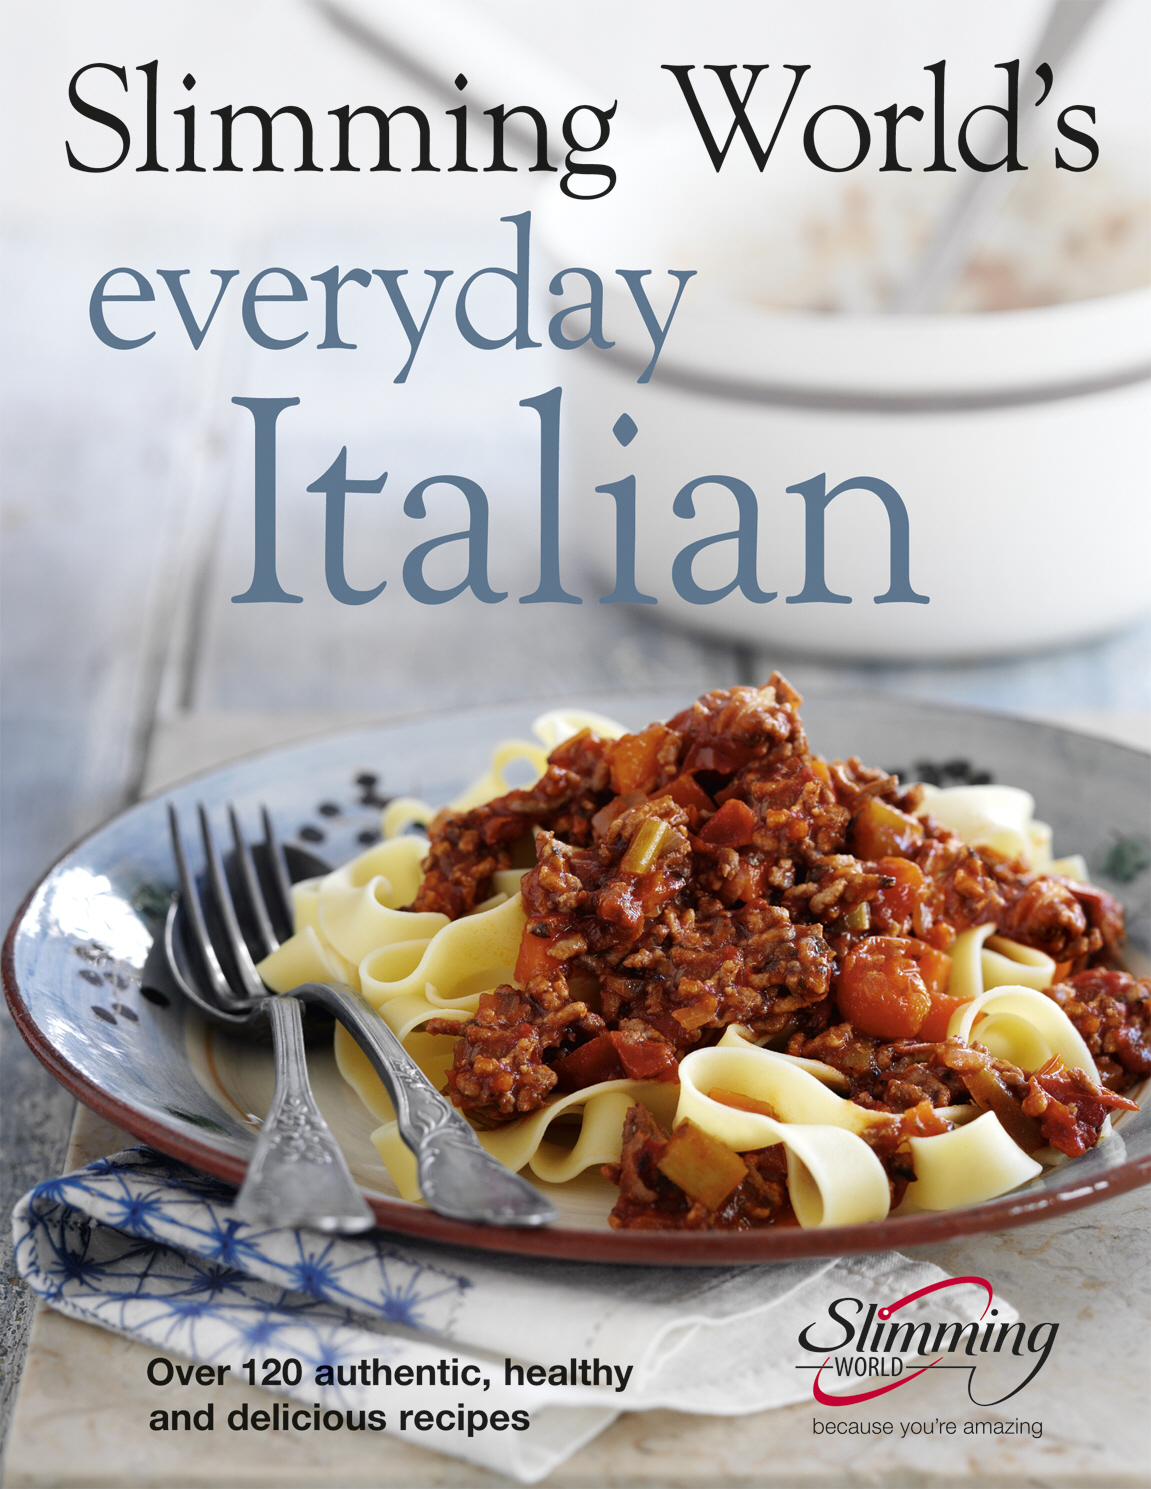 Slimming World's Everyday Italian Over 120 fresh,  healthy and delicious recipes